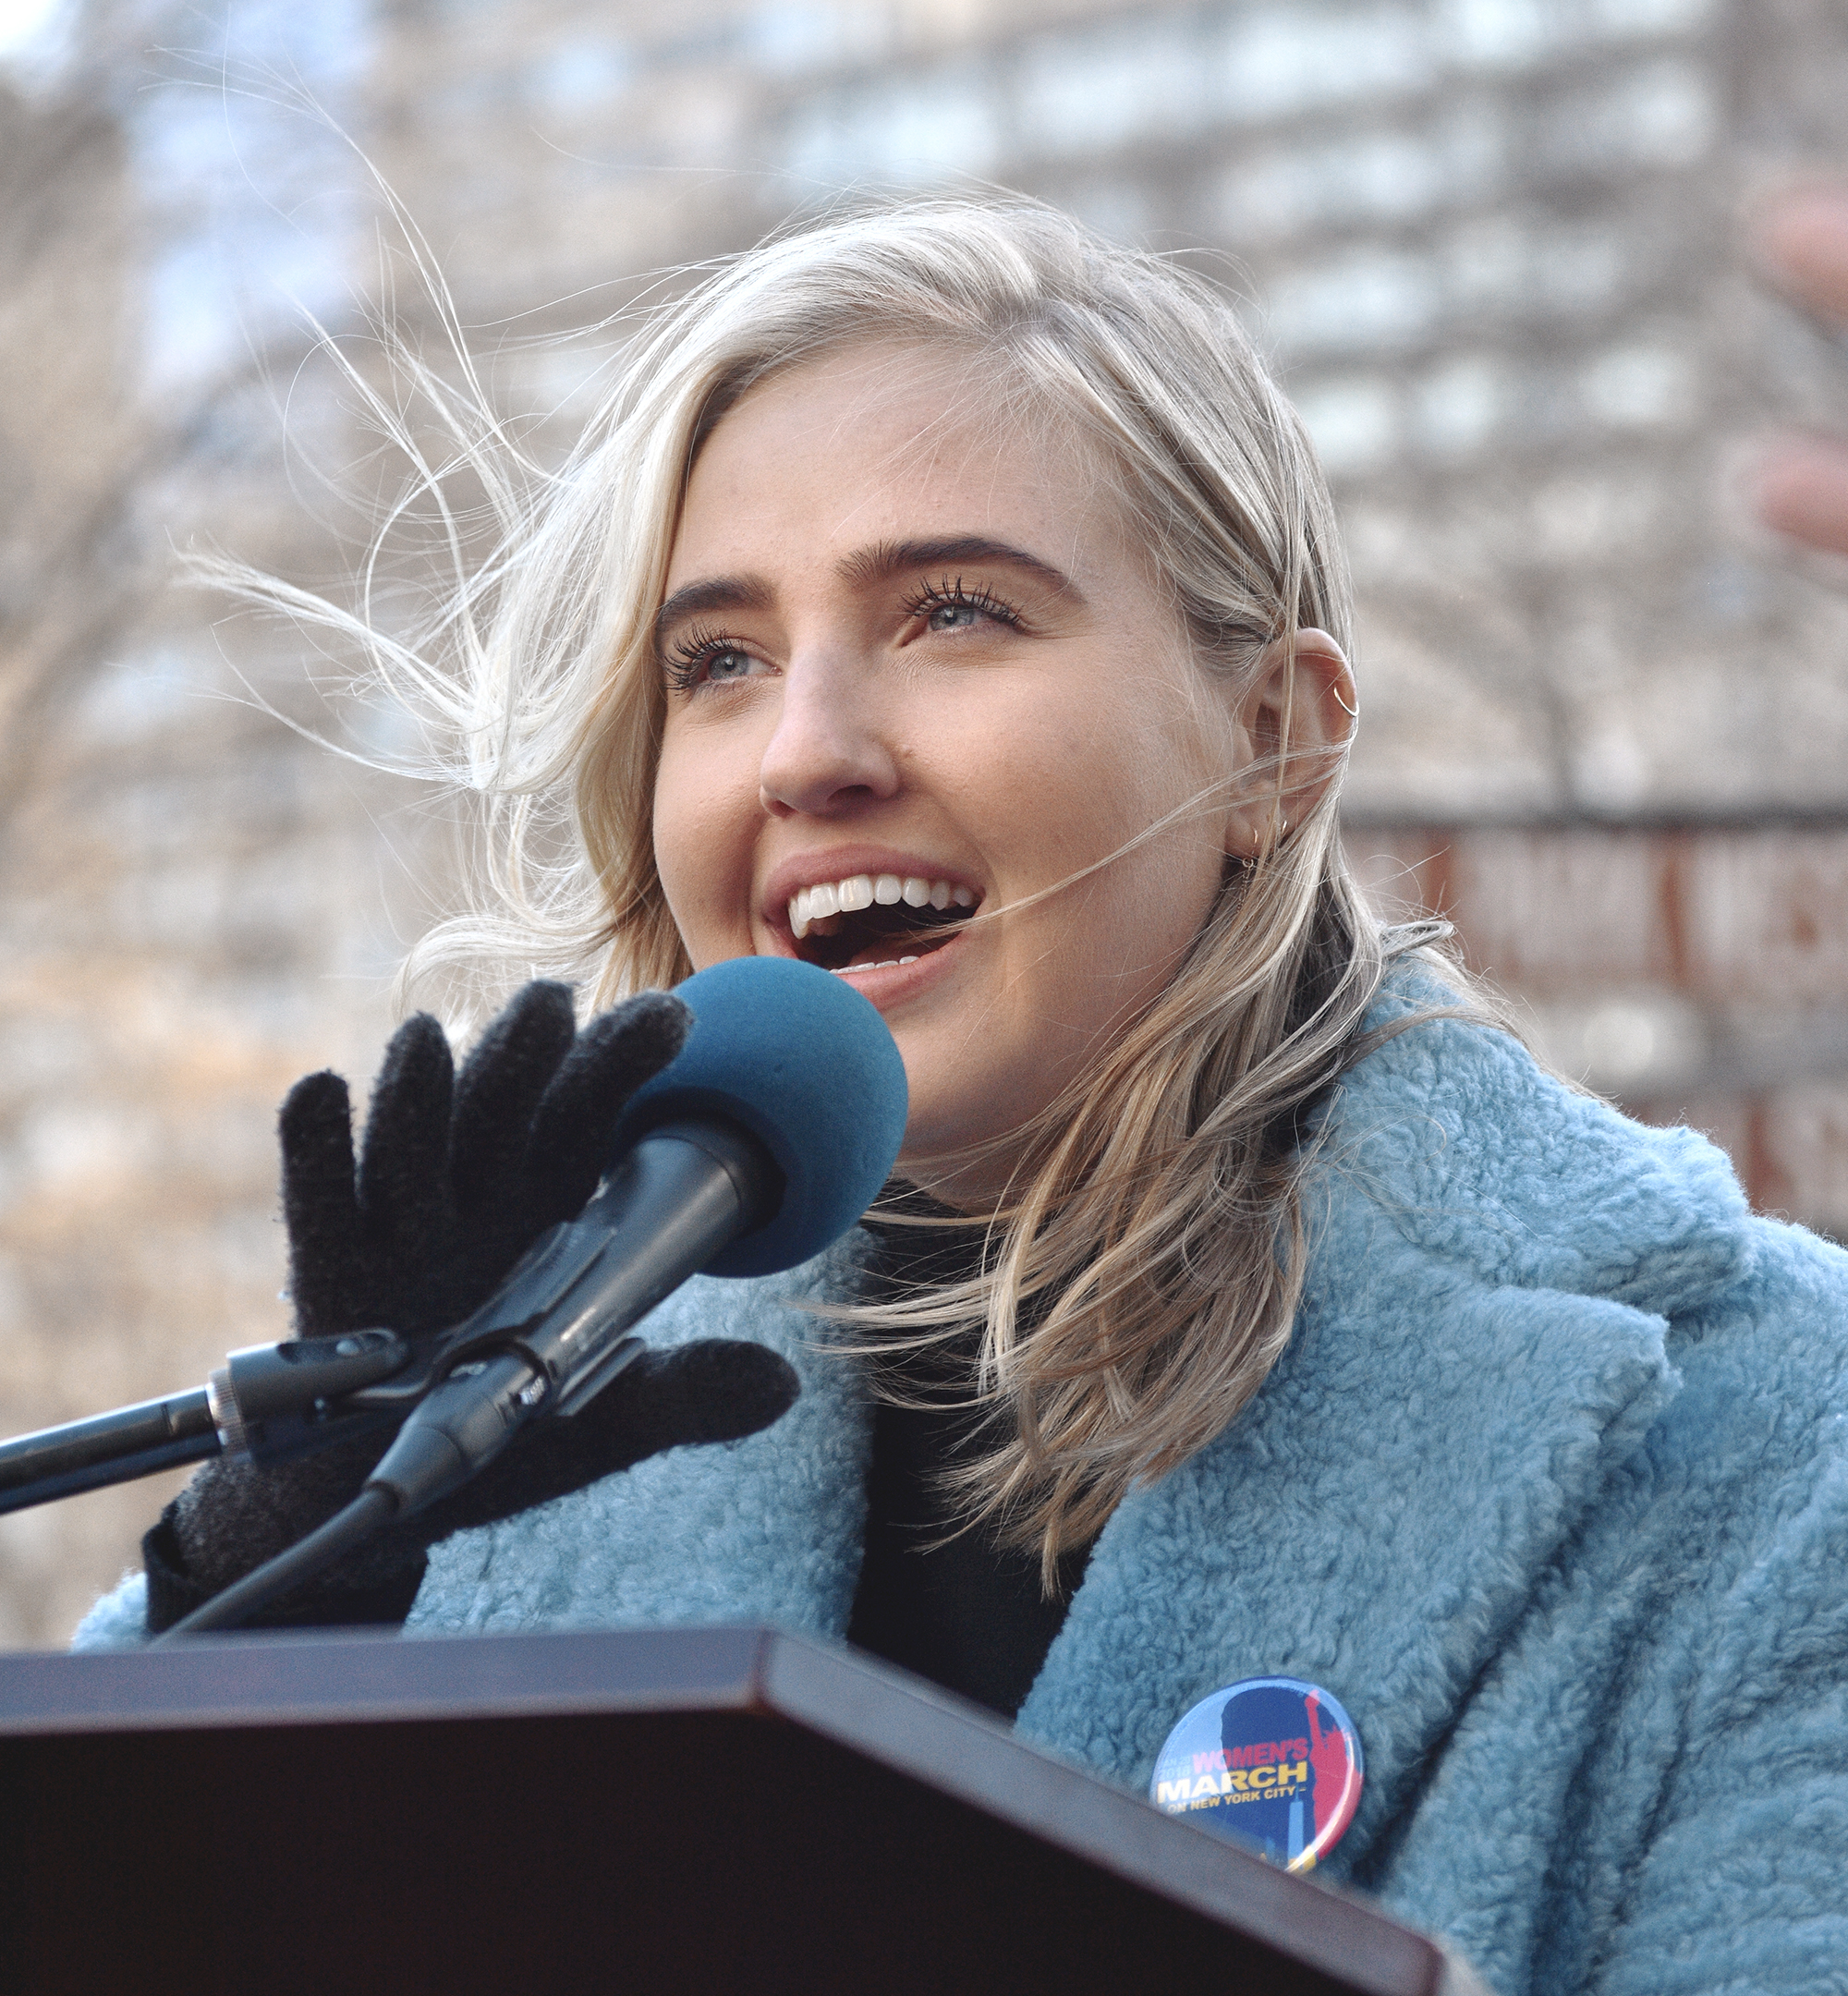 Actor and activist Veronica Dunne at the Women's March NYC, Jan 20th 2018. This picture was featured on  Veronica's instagram